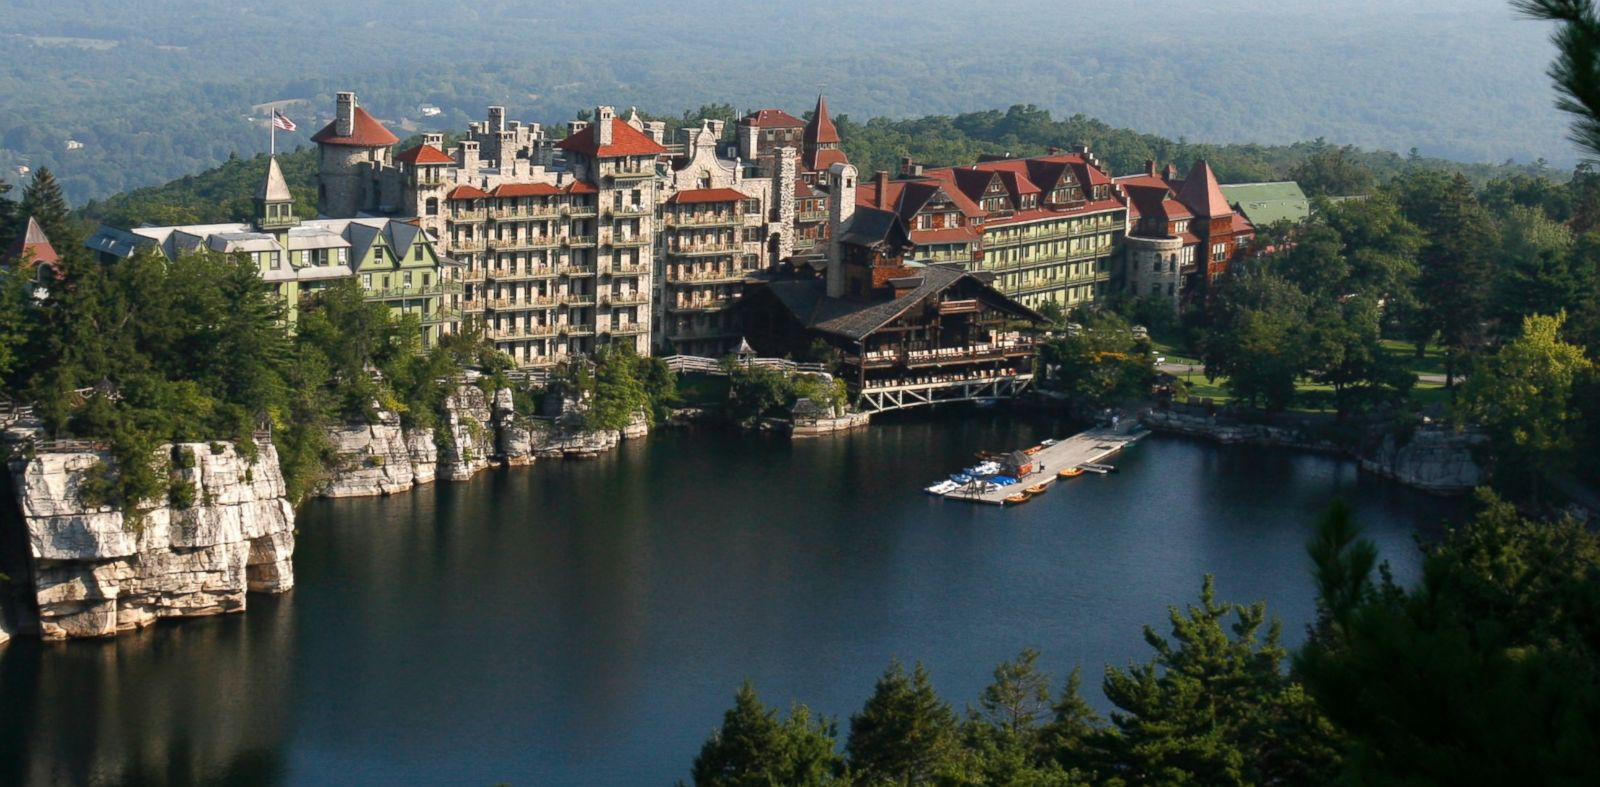 PHOTO: A view of the Mohonk Mountain House in New Paltz, N.Y., in this Aug. 28, 2007 file photo.